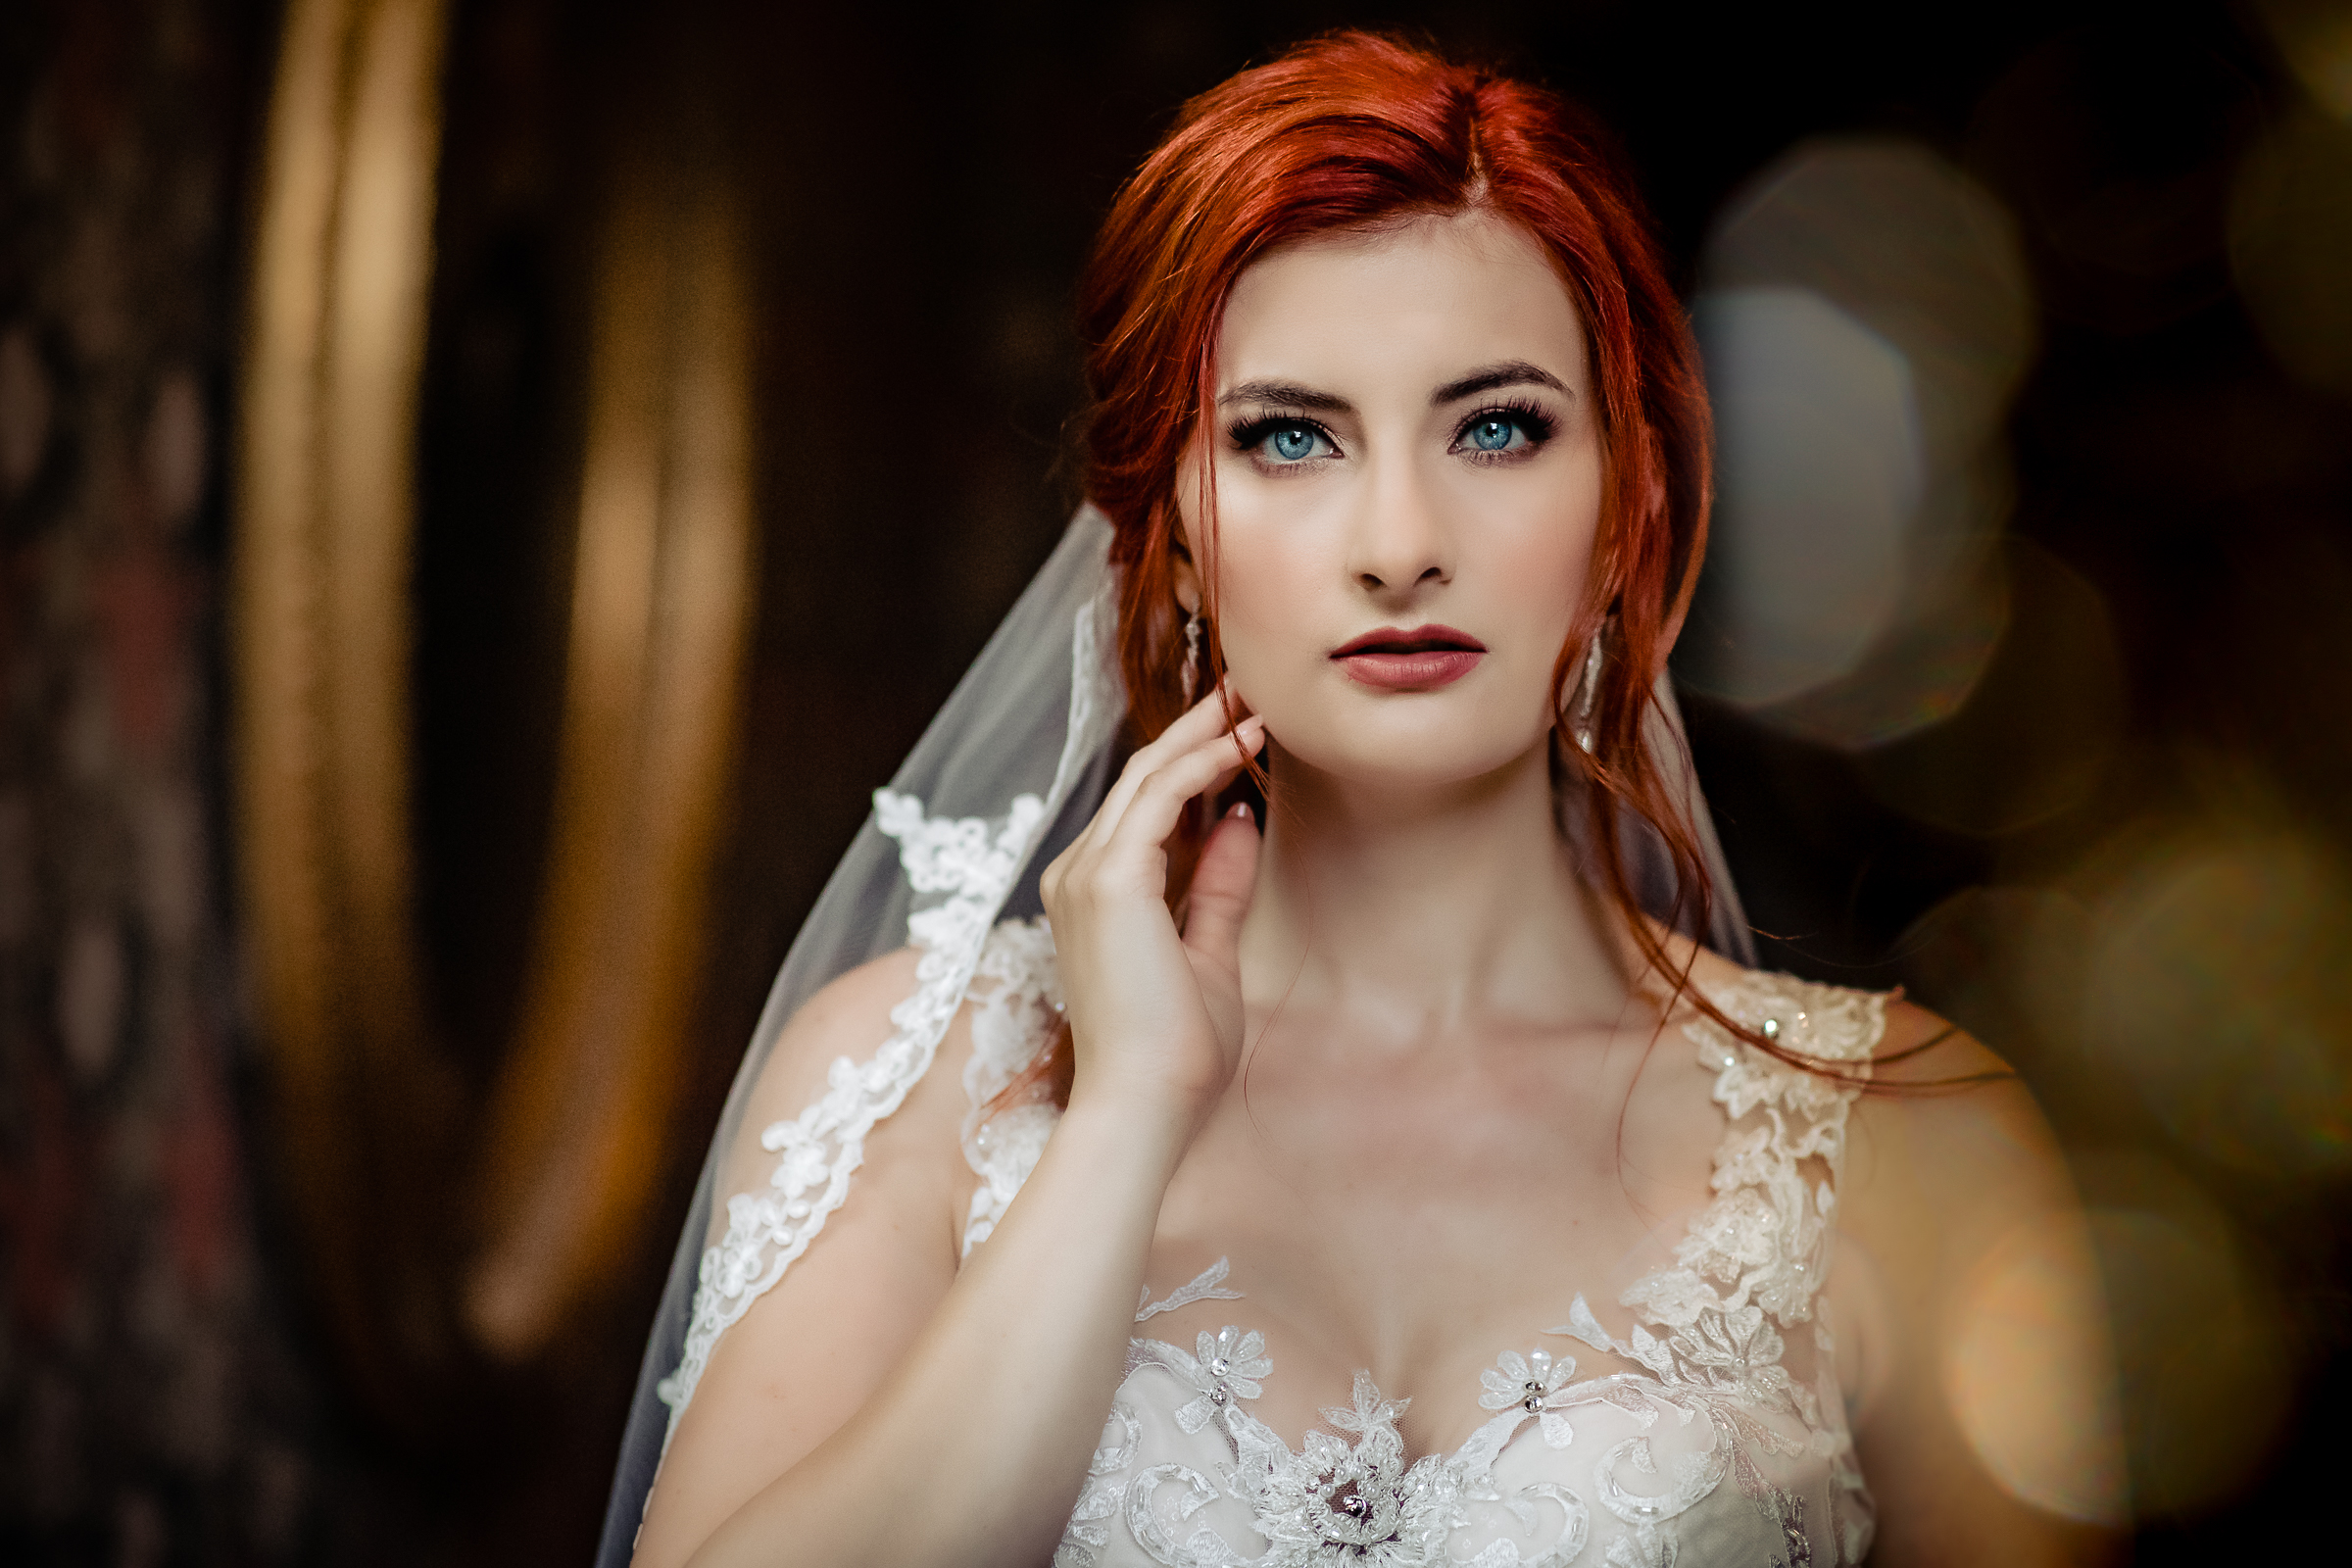 Bride with red hair and blue eyes wearing berry lipstick and dramatic eyelashes - photo by Eppel Photography - Netherlands